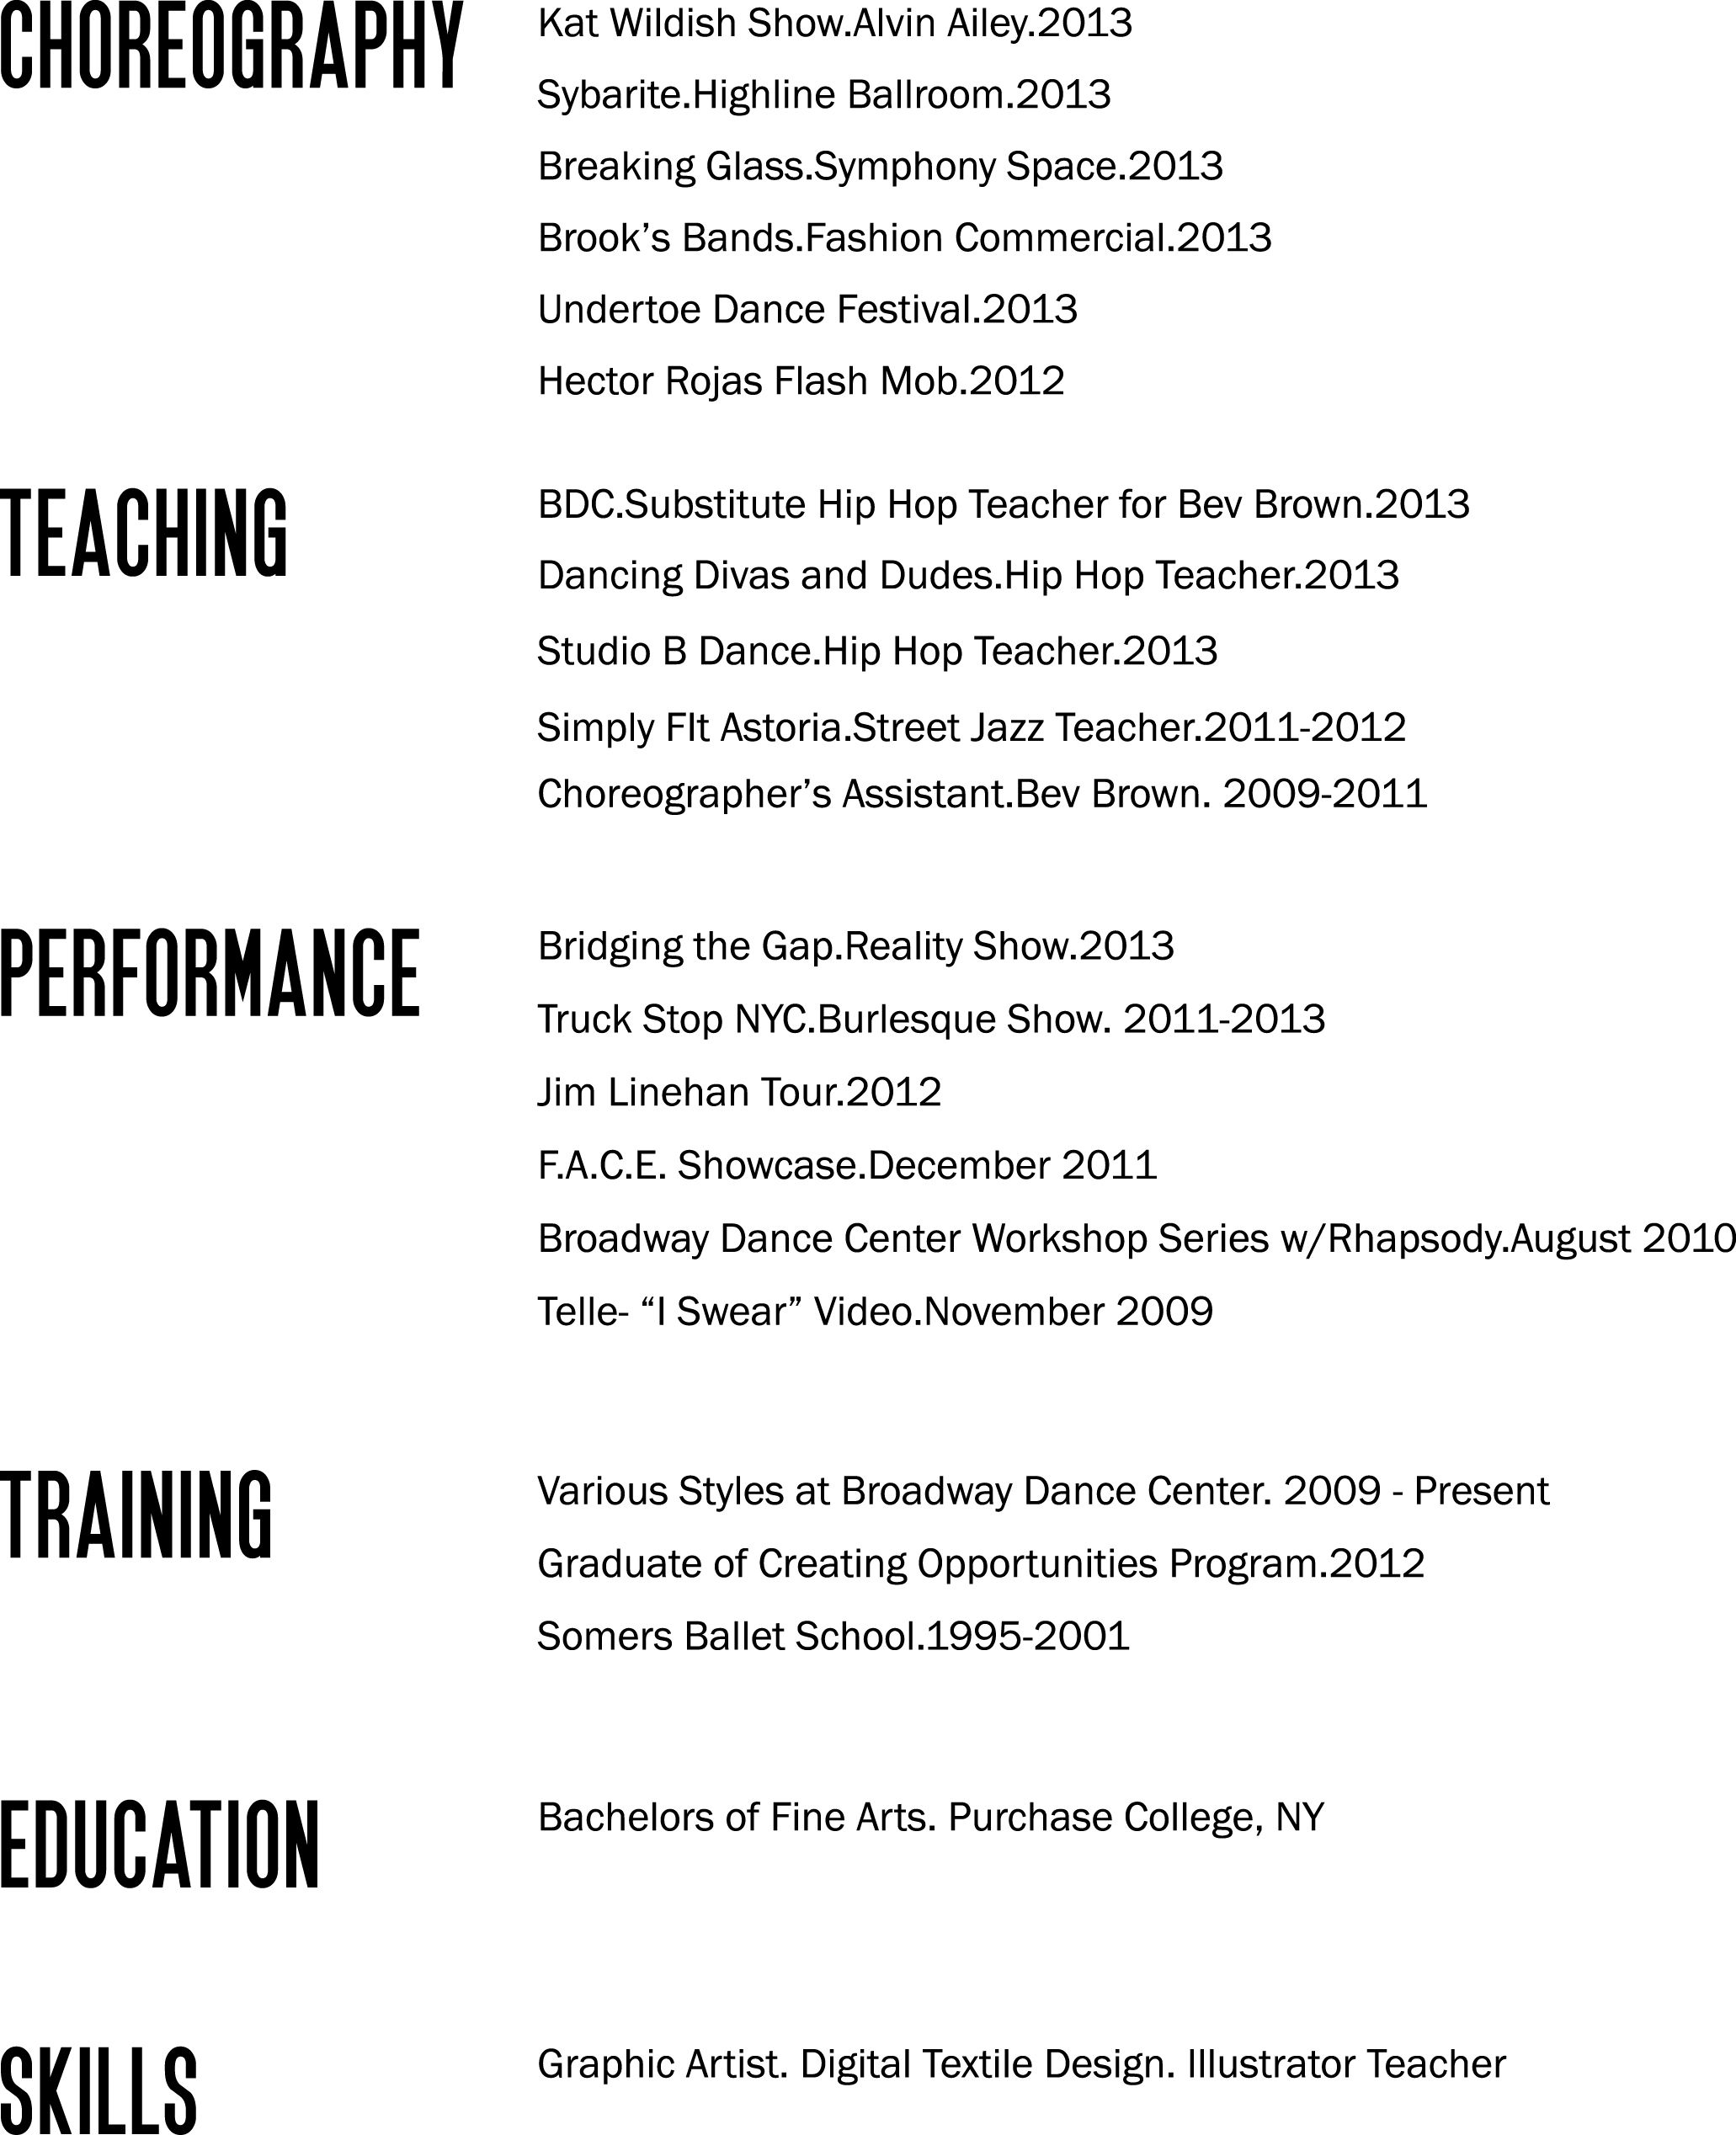 Good Qualifications To Put On A Resume Bad Layout But Good Reminder Of What To Put On A Dance